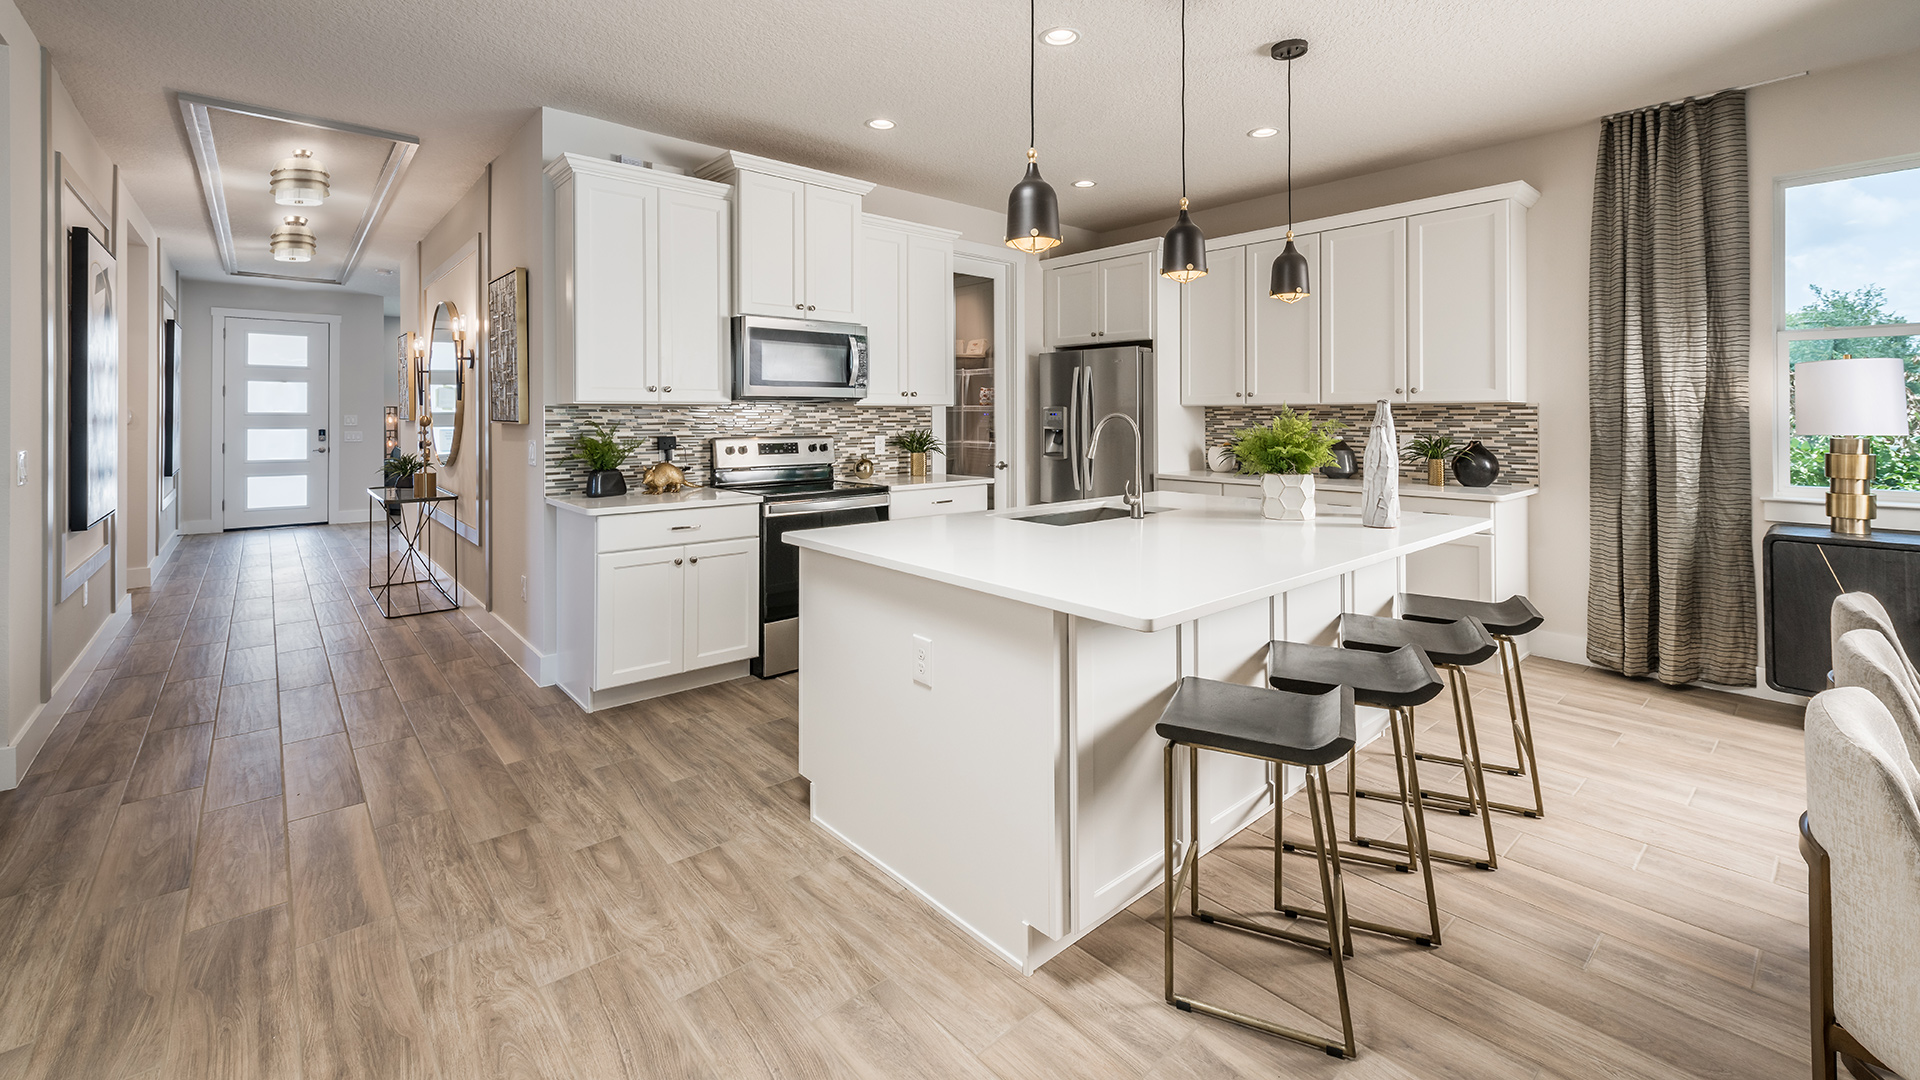 Kitchens with granite and stainless steel appliances